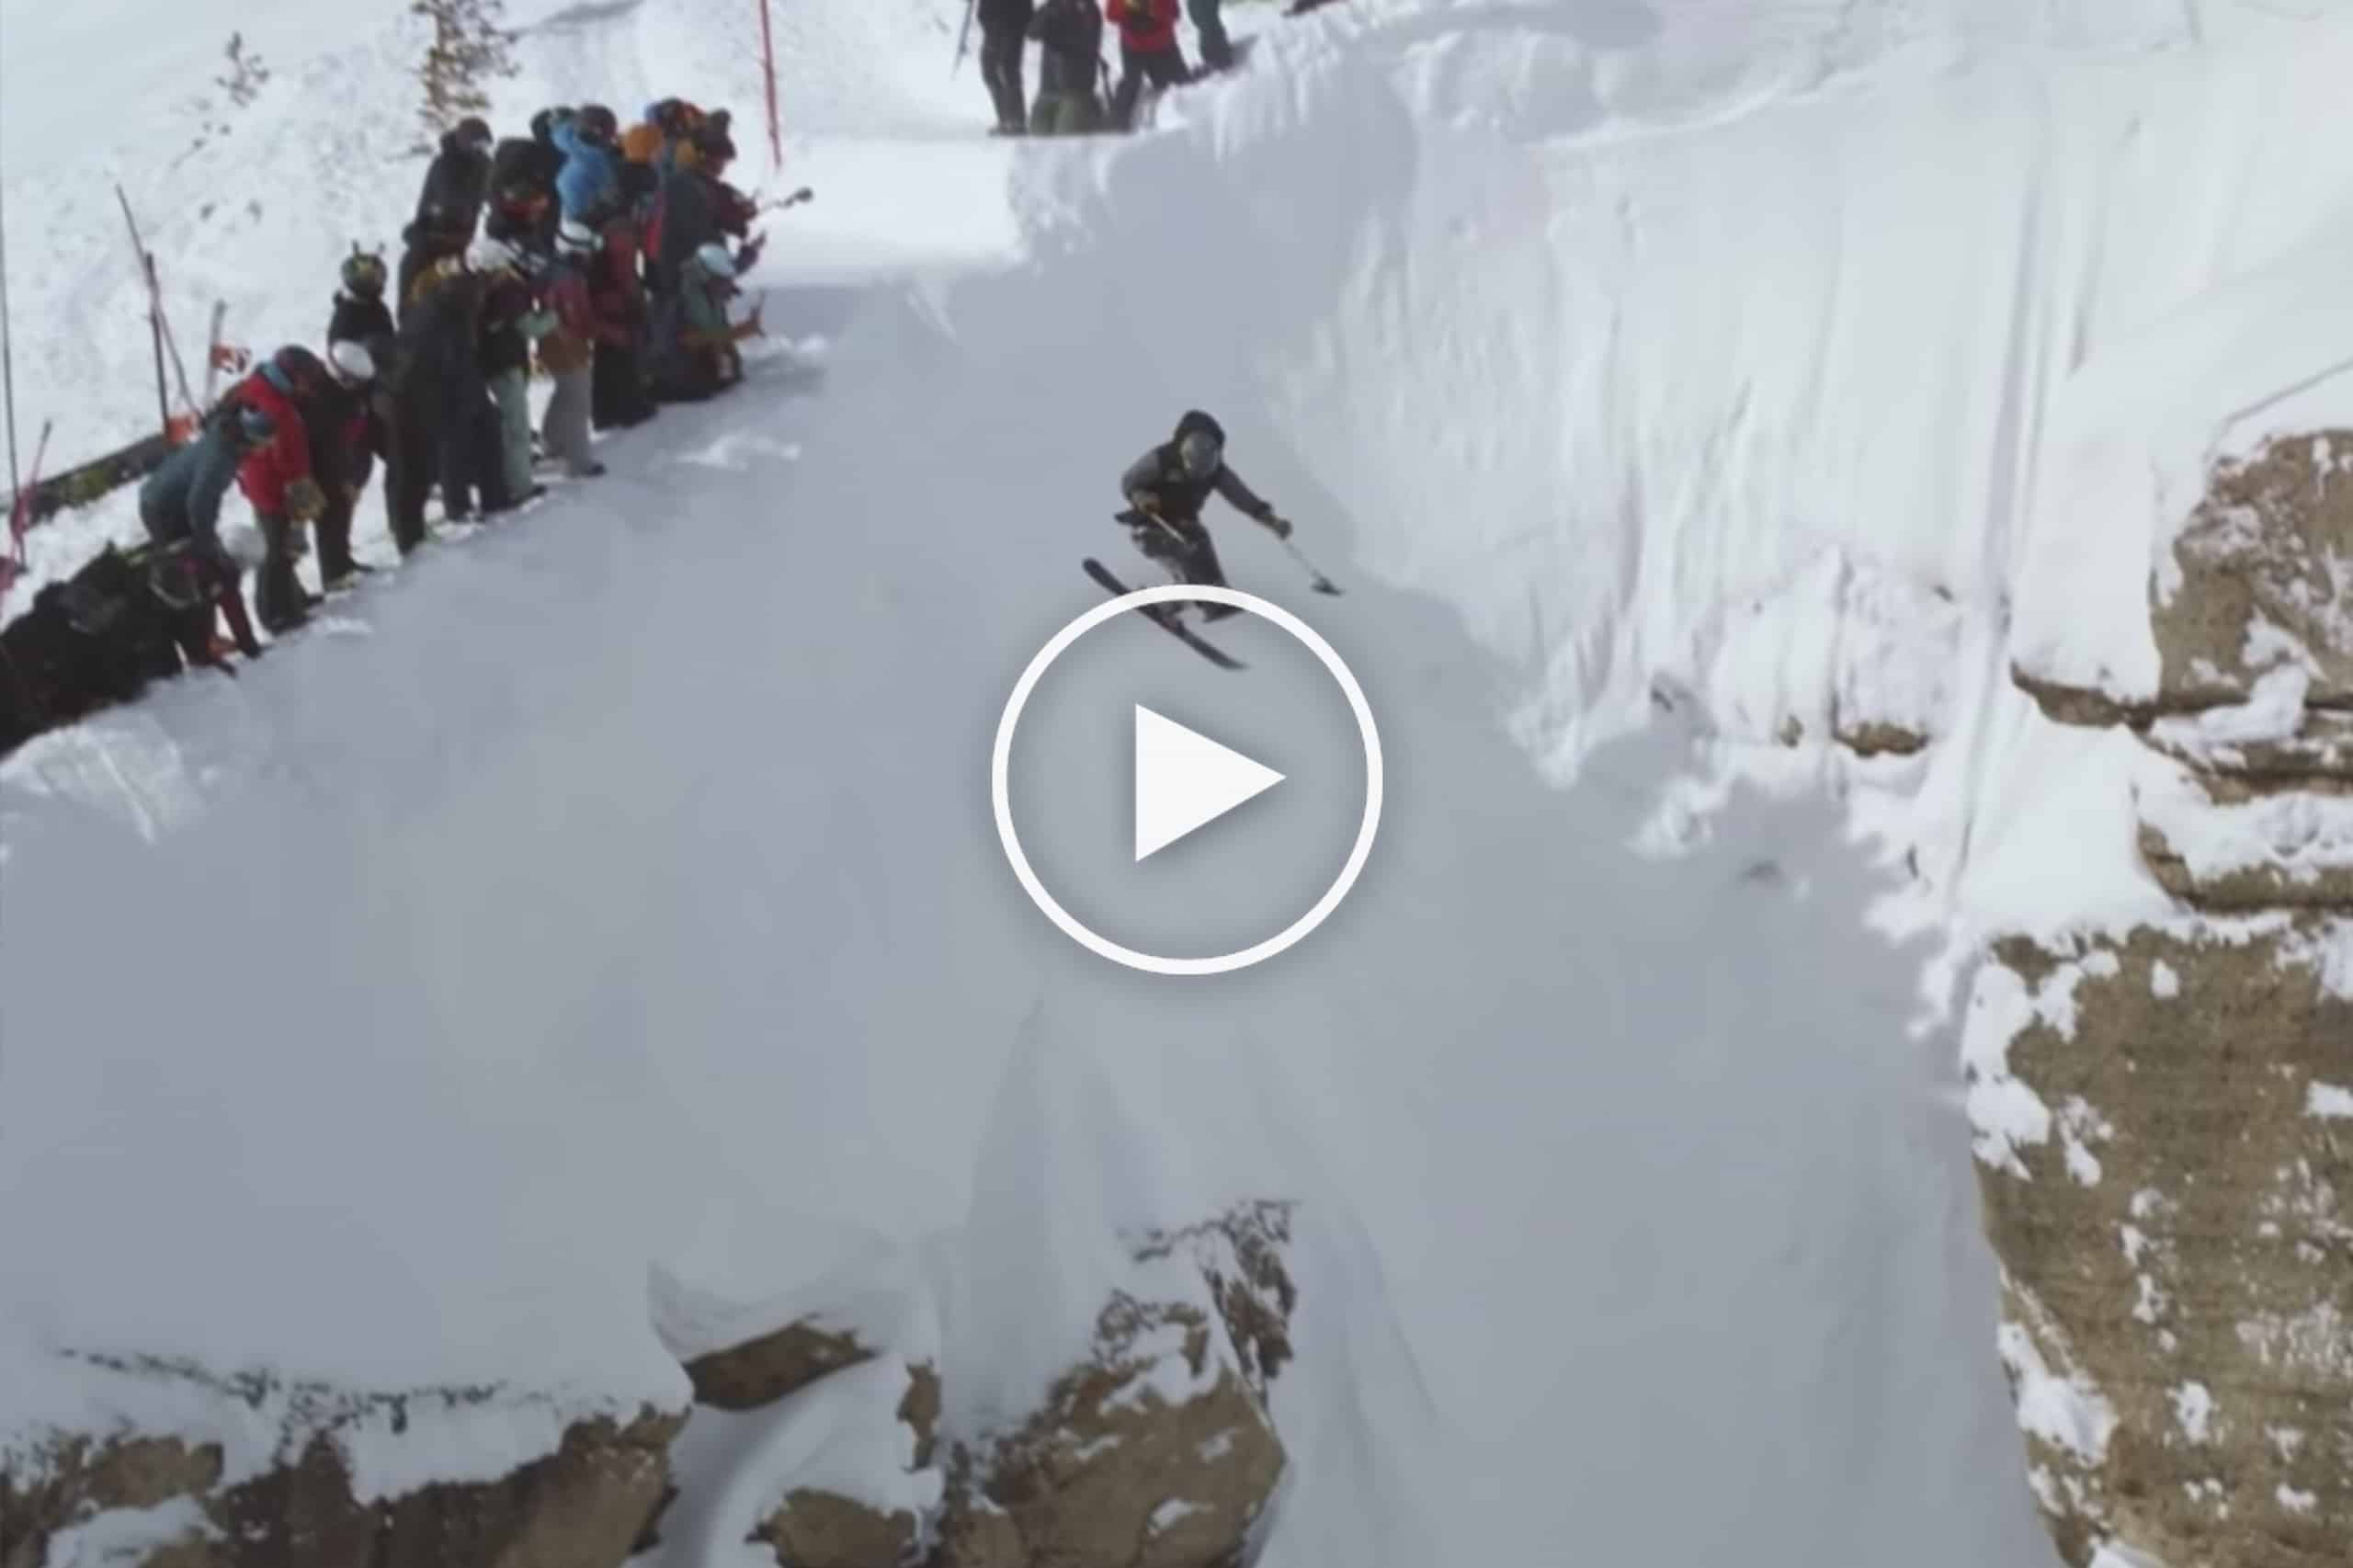 Sit Skier Trevor Kenninson Launches Jackson Hole's Infamous Corbet's Couloir - Not to be Missed Video